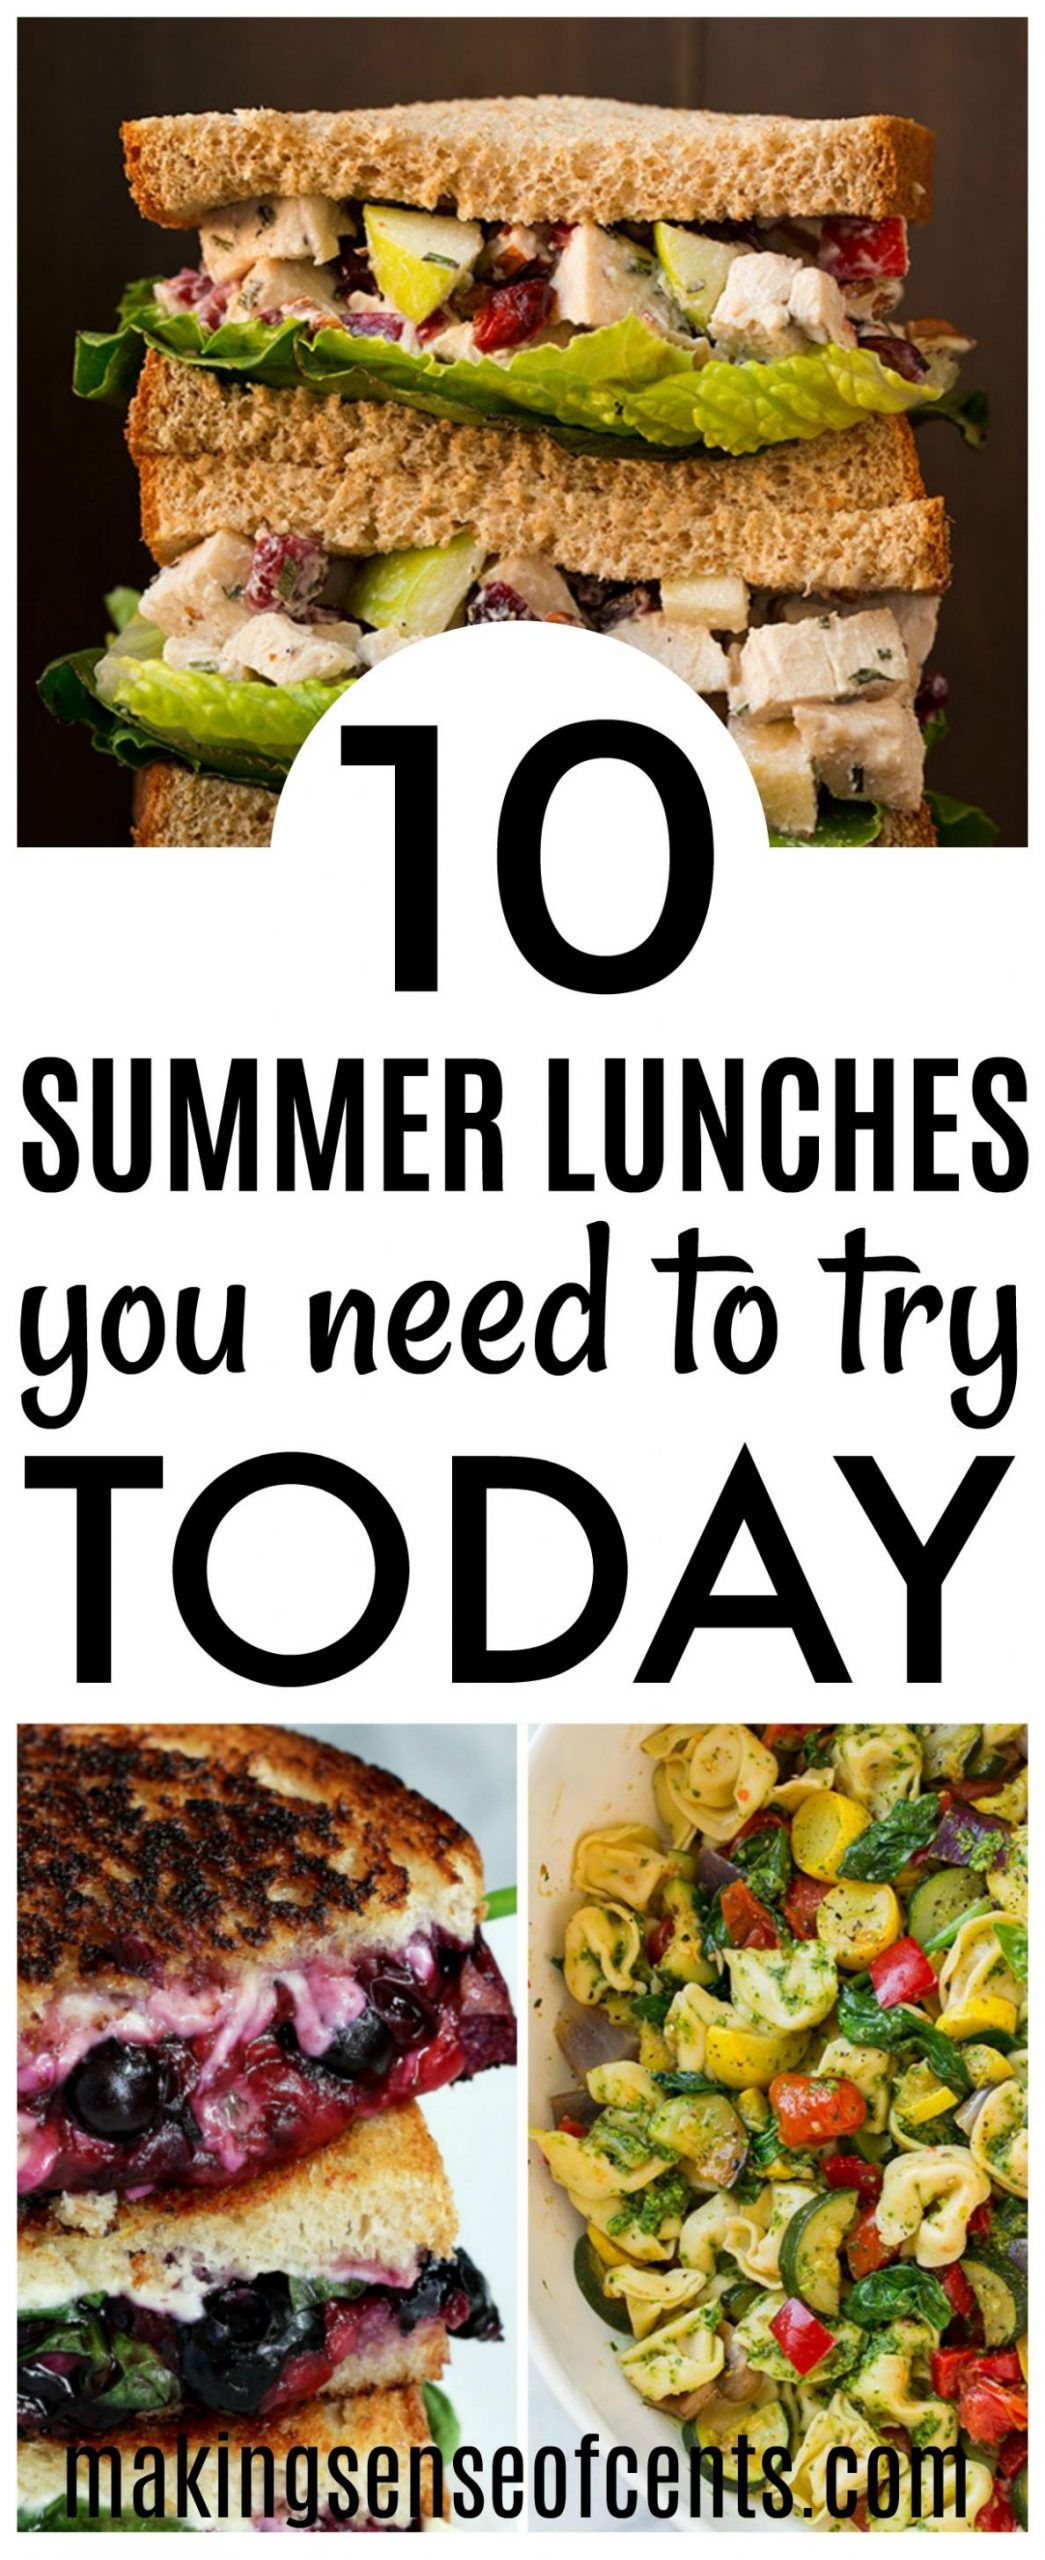 9 Delicious Summer Lunch Ideas - Summer Meals You Need To Make! - Recipes For Summer Vacation